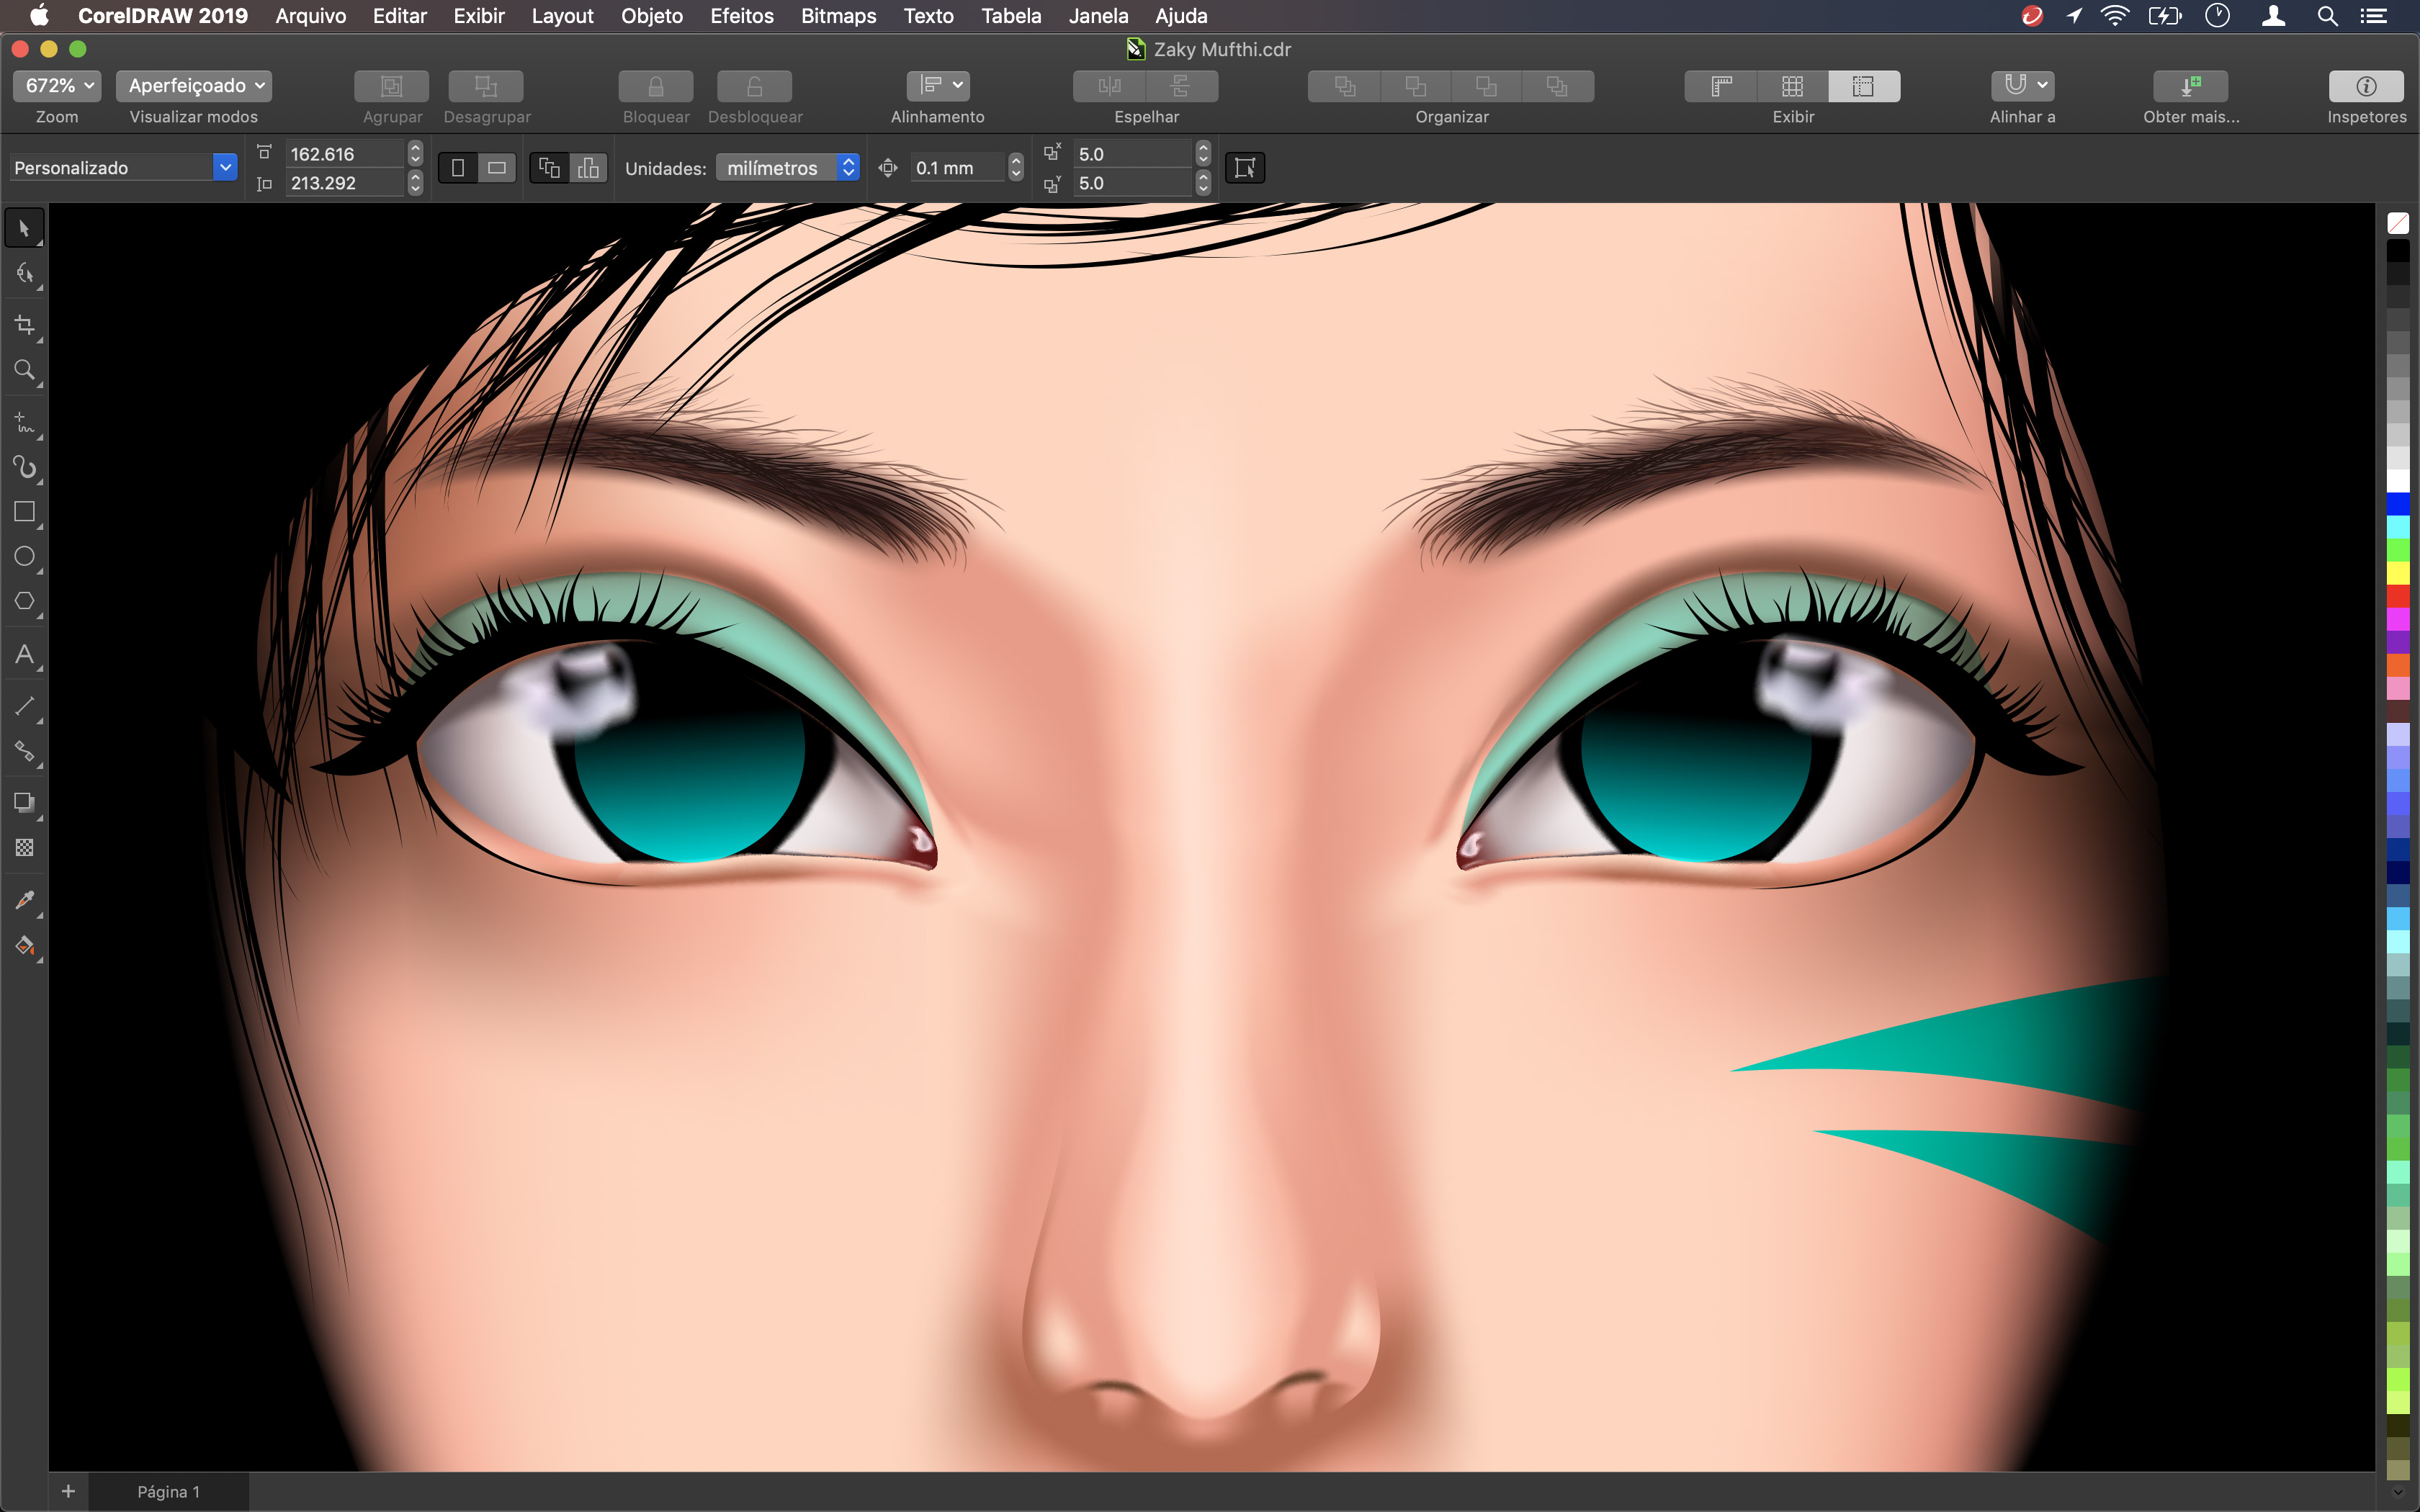 CorelDRAW 2019 for Mac BR copy